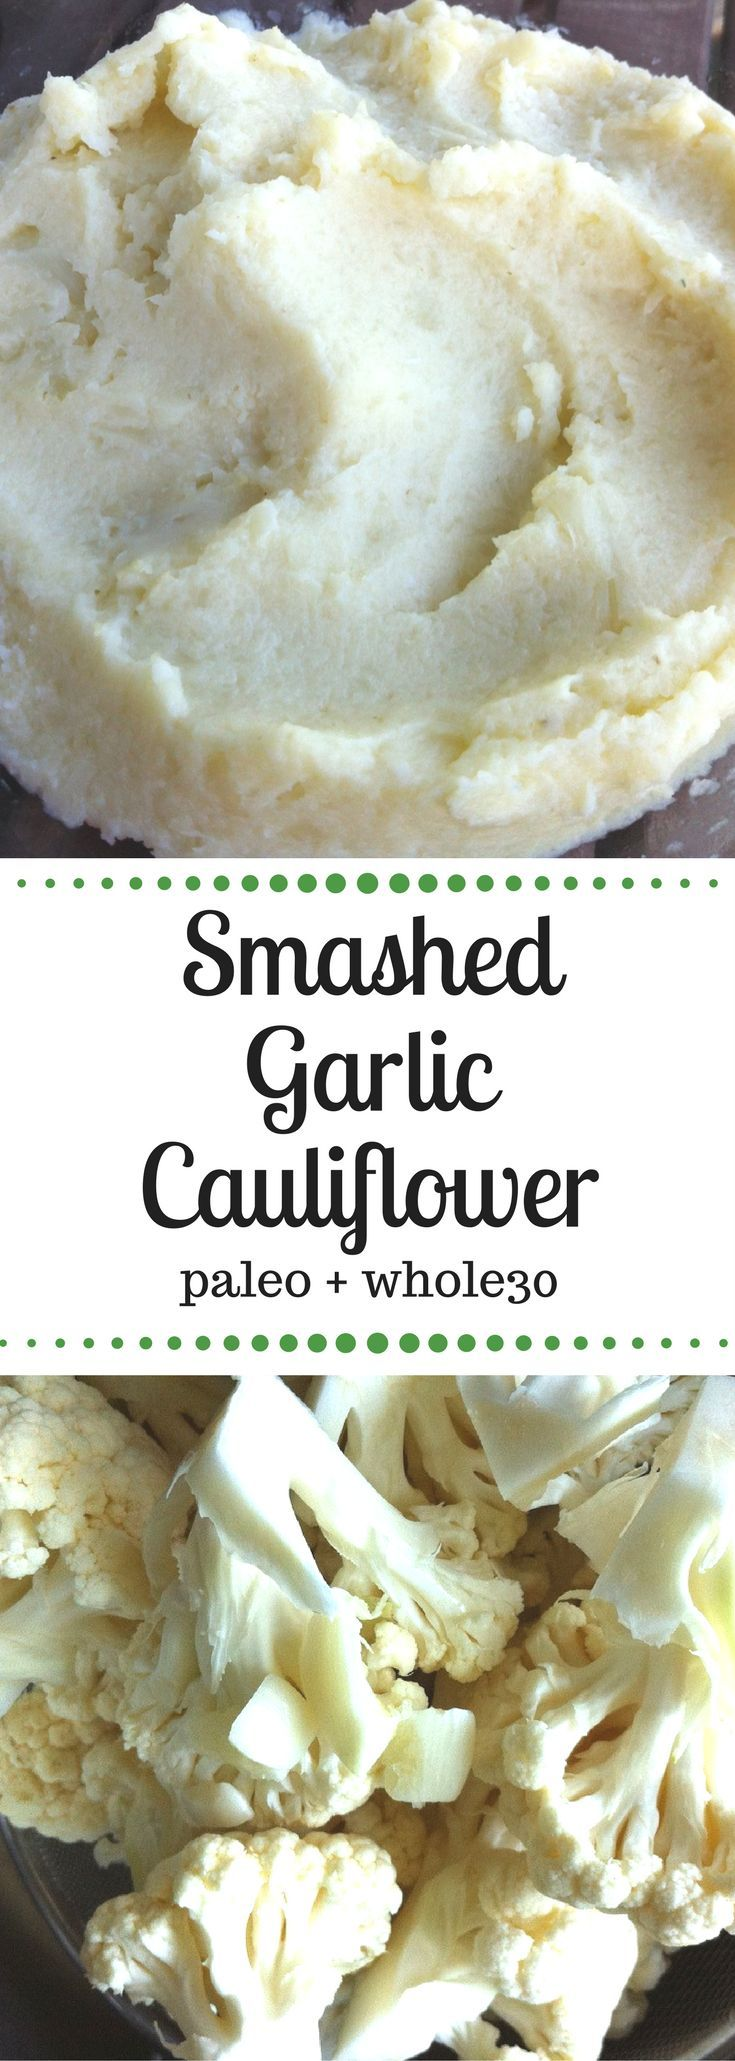 Smashed Garlic Cauliflower is the perfect #paleo and #whole30 side dish. Paleo, Whole30, Grain-Free, Dairy-Free Recipe